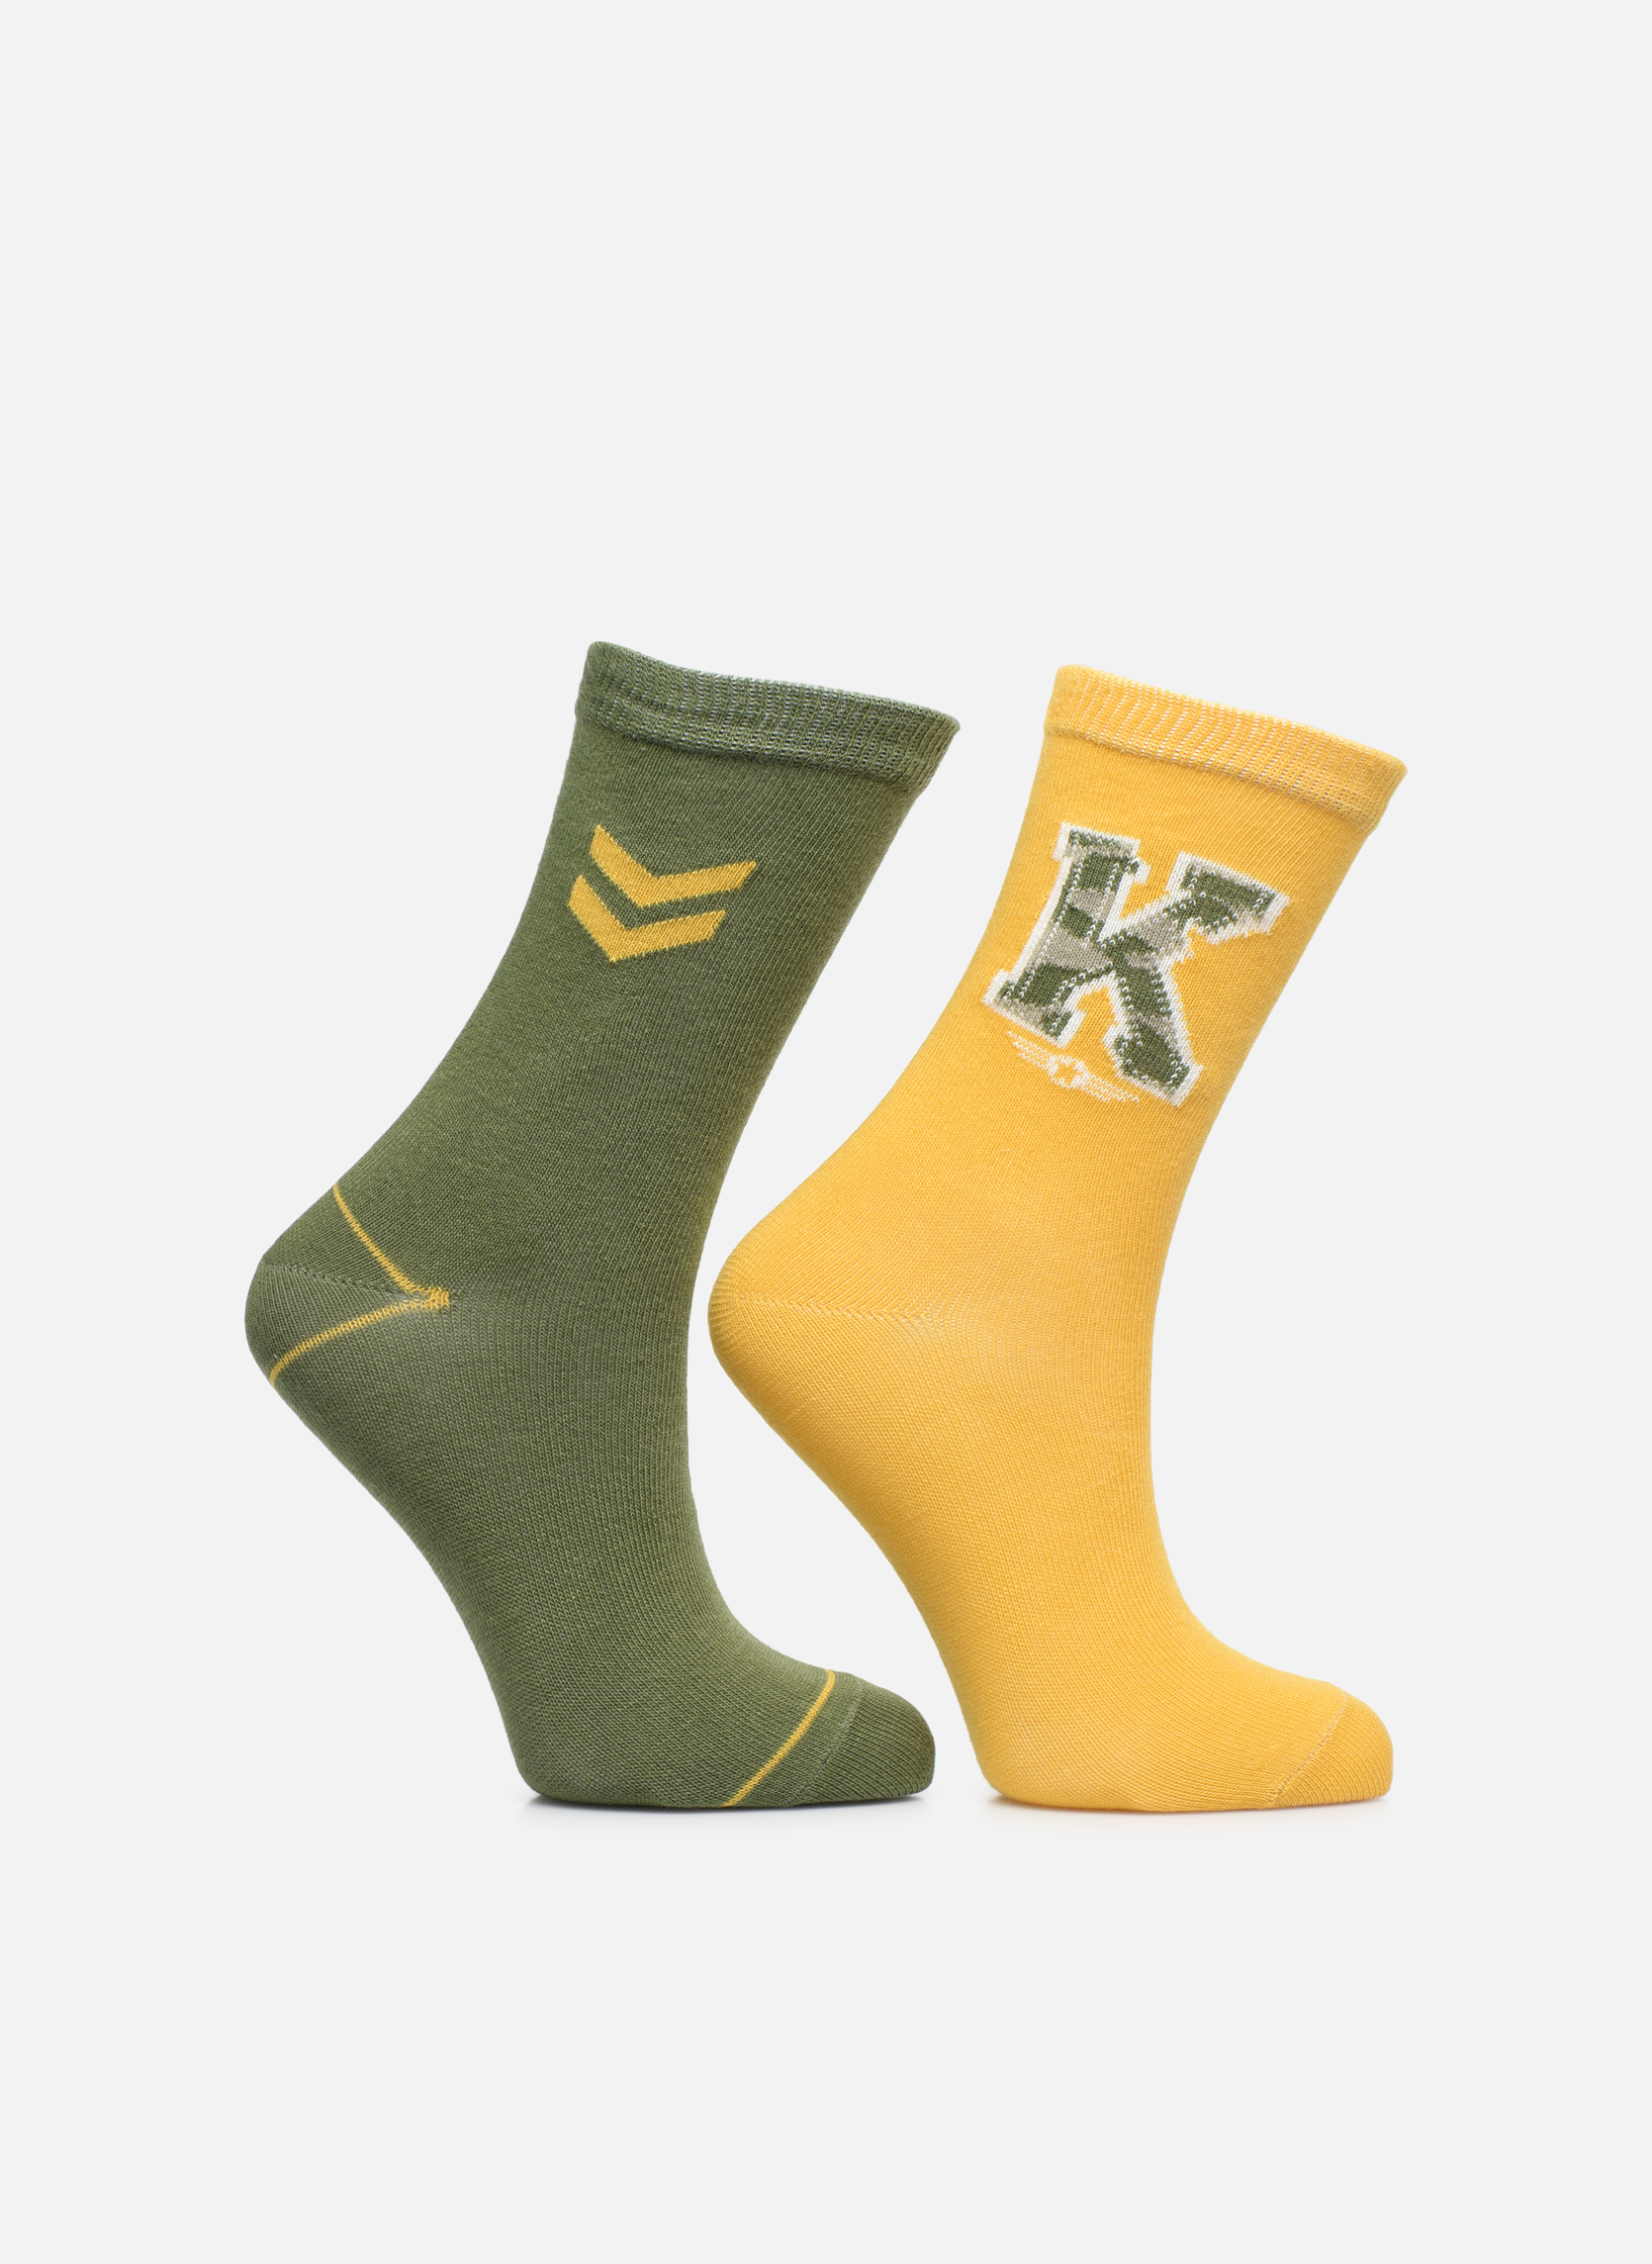 Socks Chevrons Pack of 2